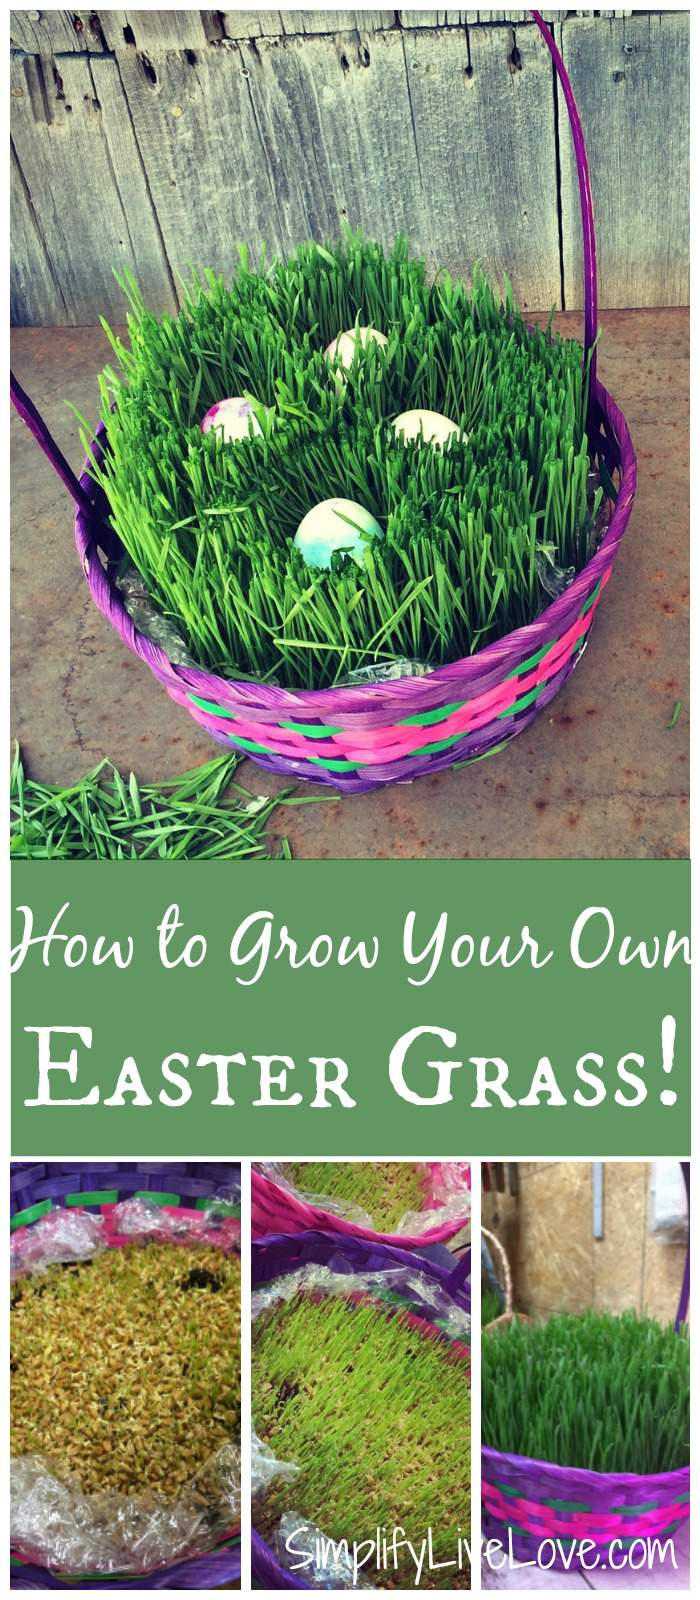 It's actually a lot easier to grow your own Easter Grass than you may think. And it doesn't even take that all. All you need is a few supplies and about a week! So keep reading and try something new this year!